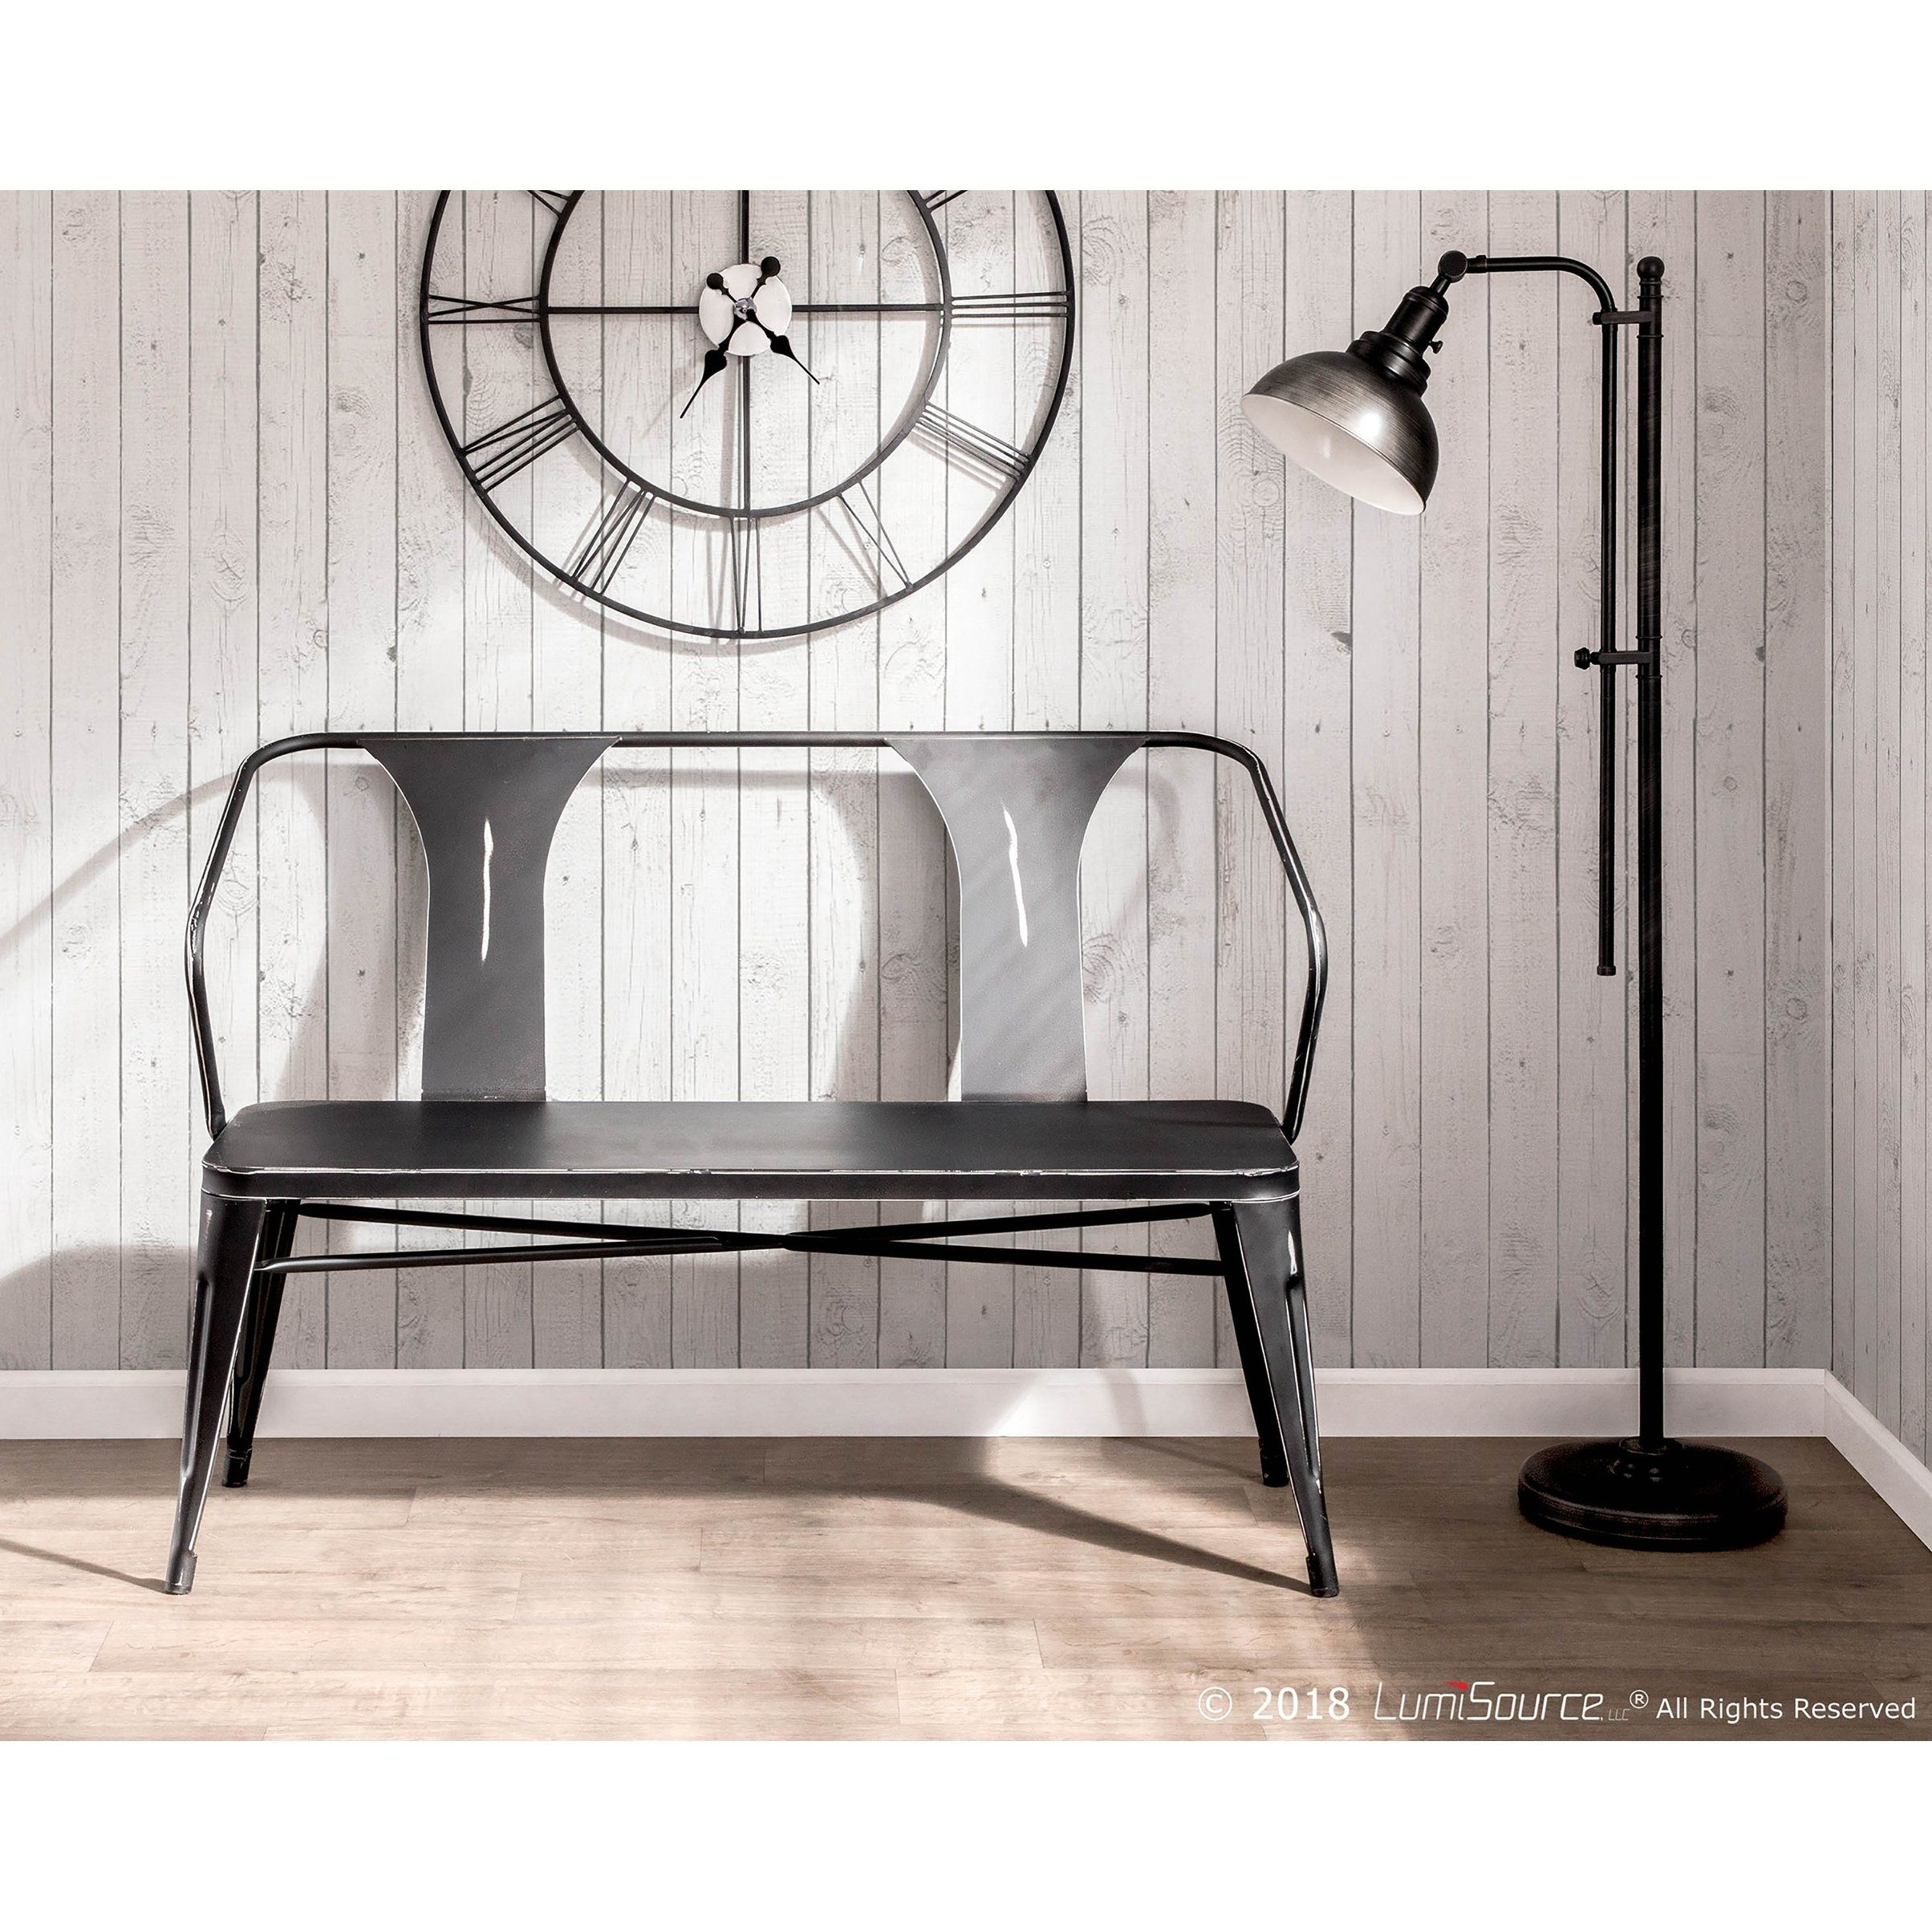 Outstanding Waco Industrial Metal Dining Entryway Bench Vintage Black Caraccident5 Cool Chair Designs And Ideas Caraccident5Info